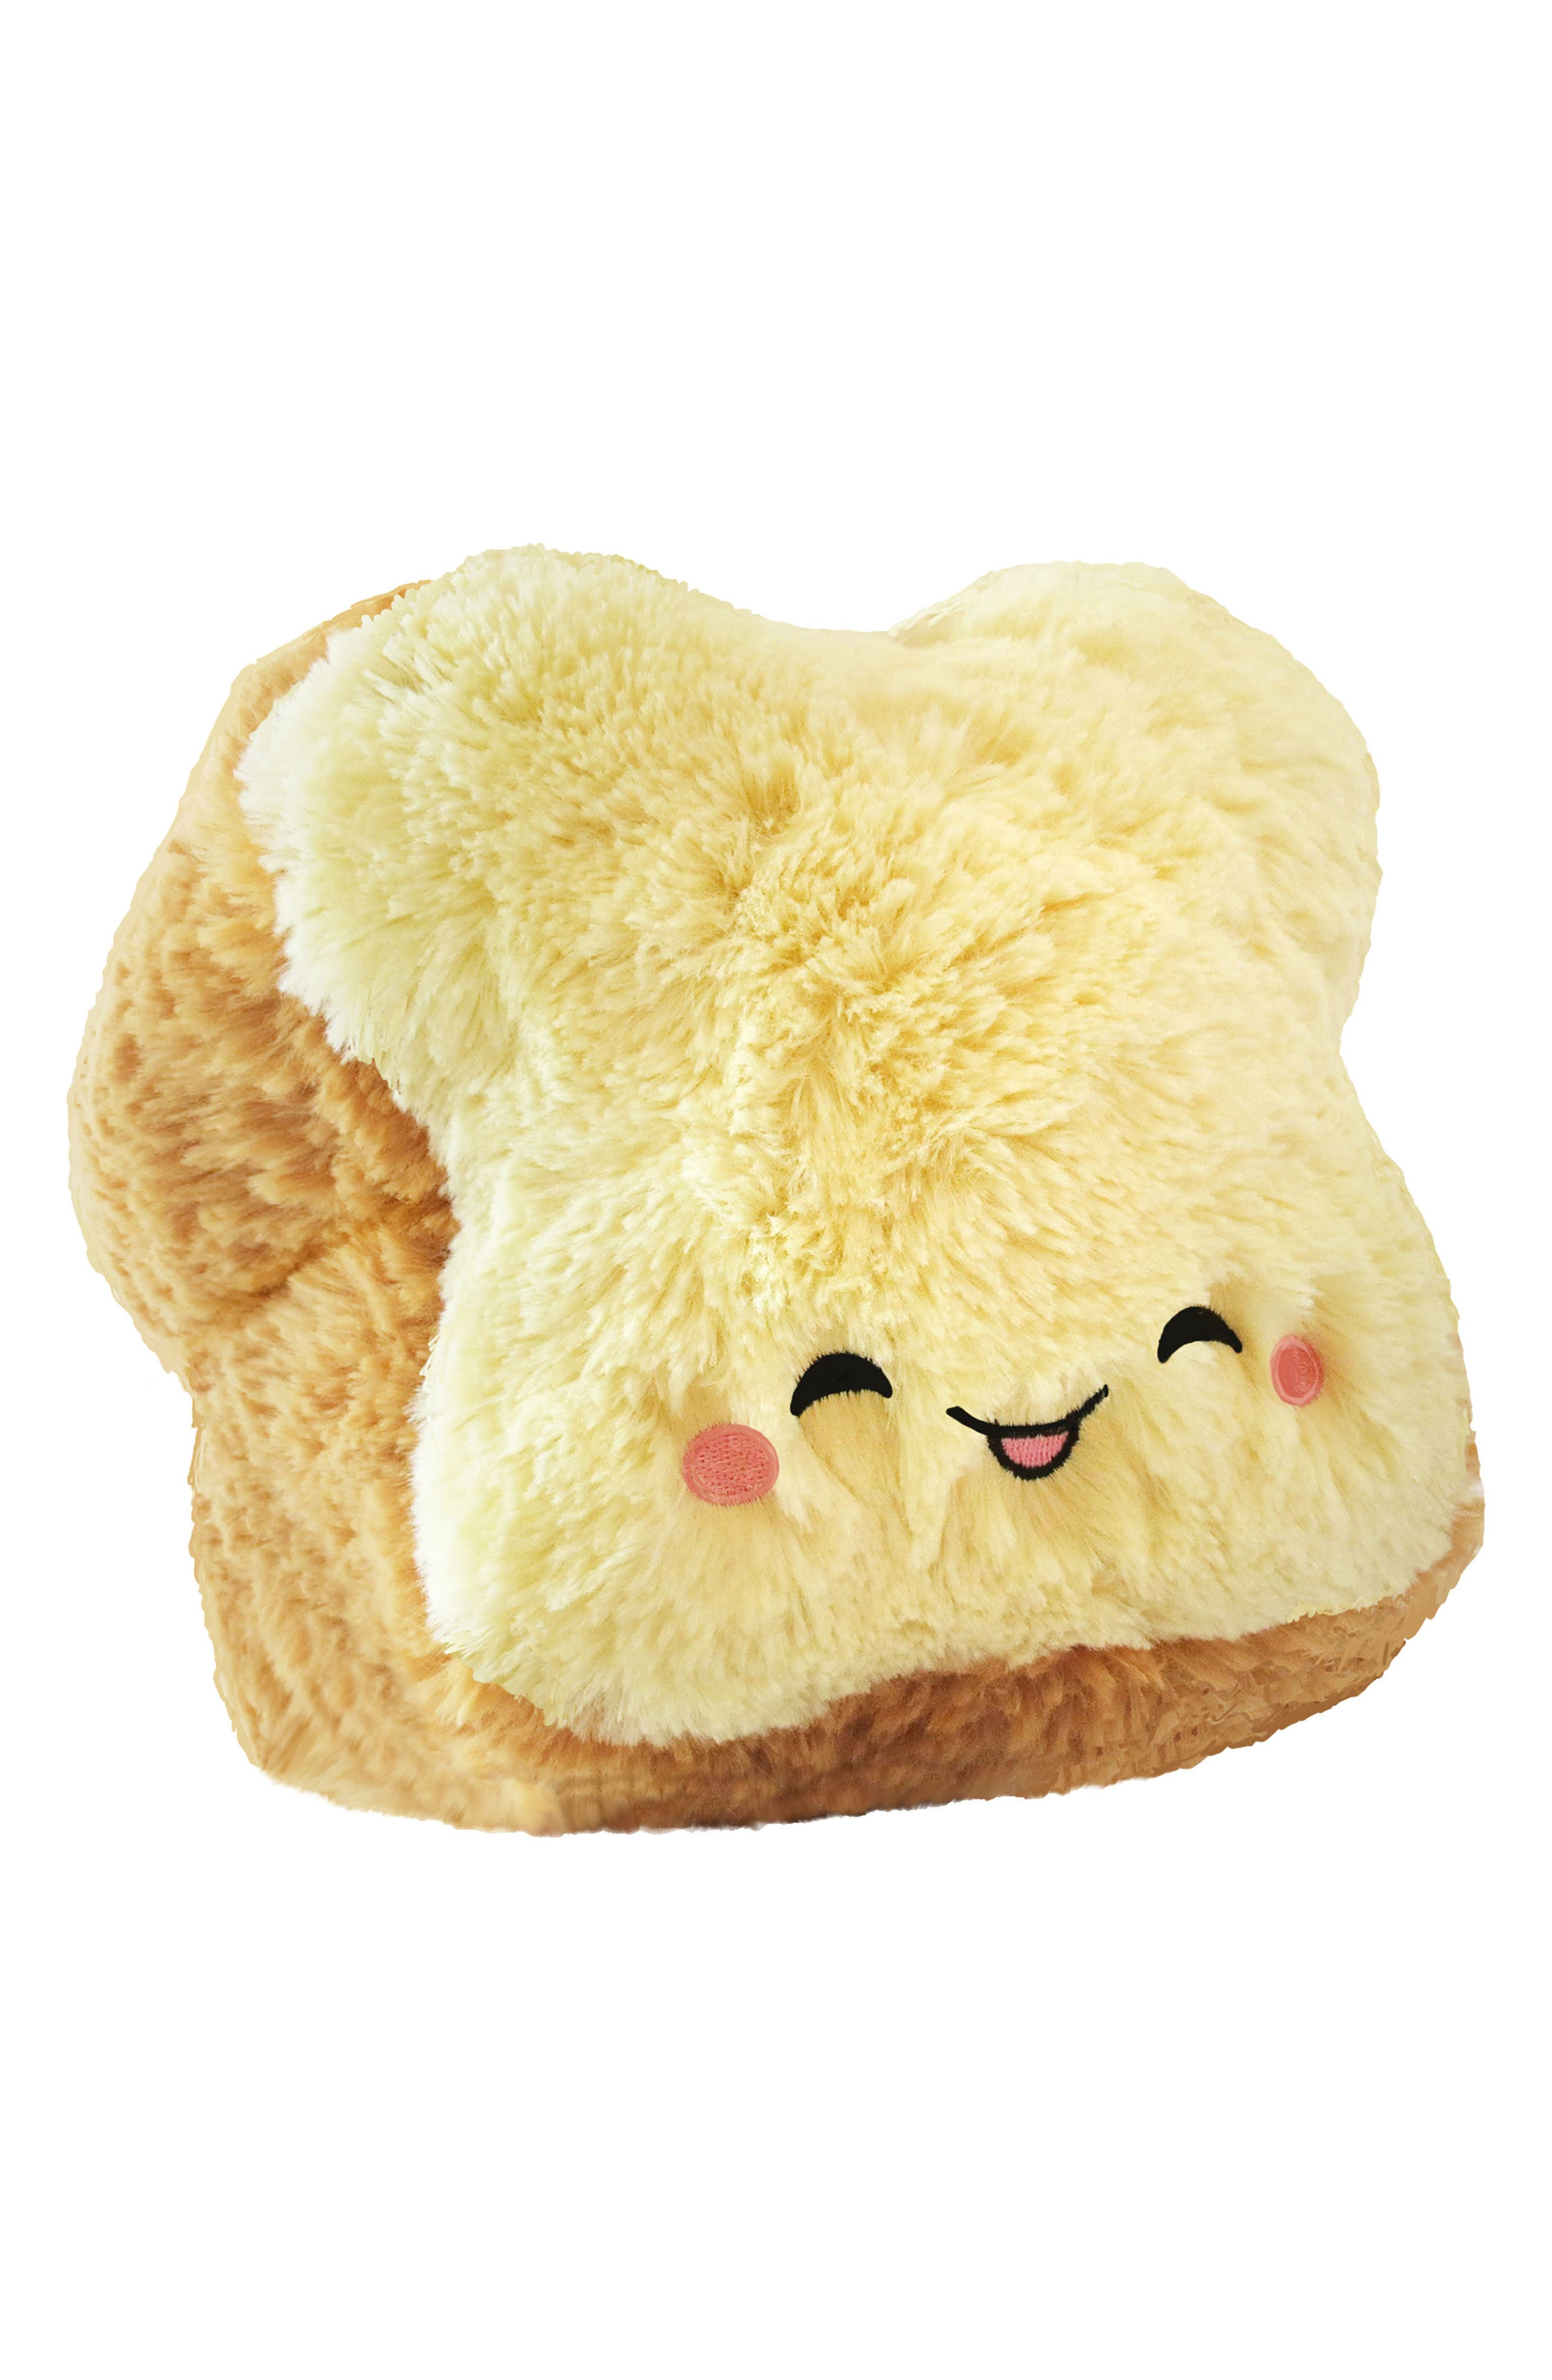 Mini Loaf of Bread Stuffed Toy,                         Main,                         color, Brown